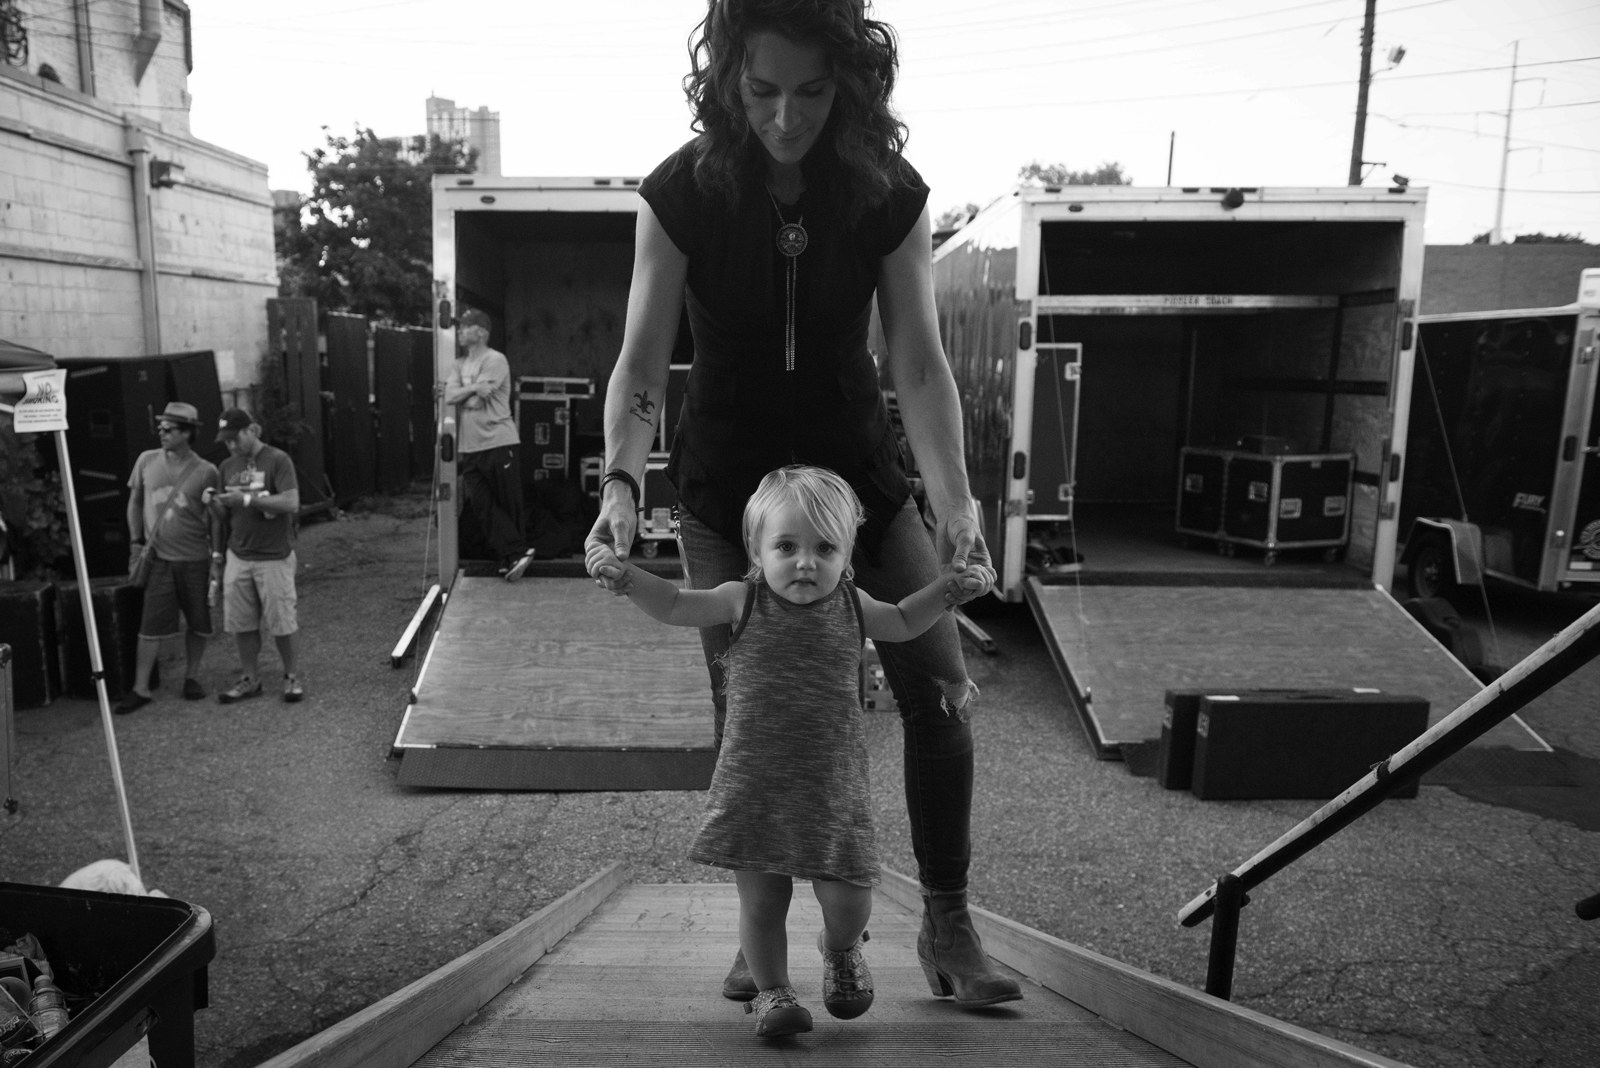 A mother walks behind her toddler child up a ramp